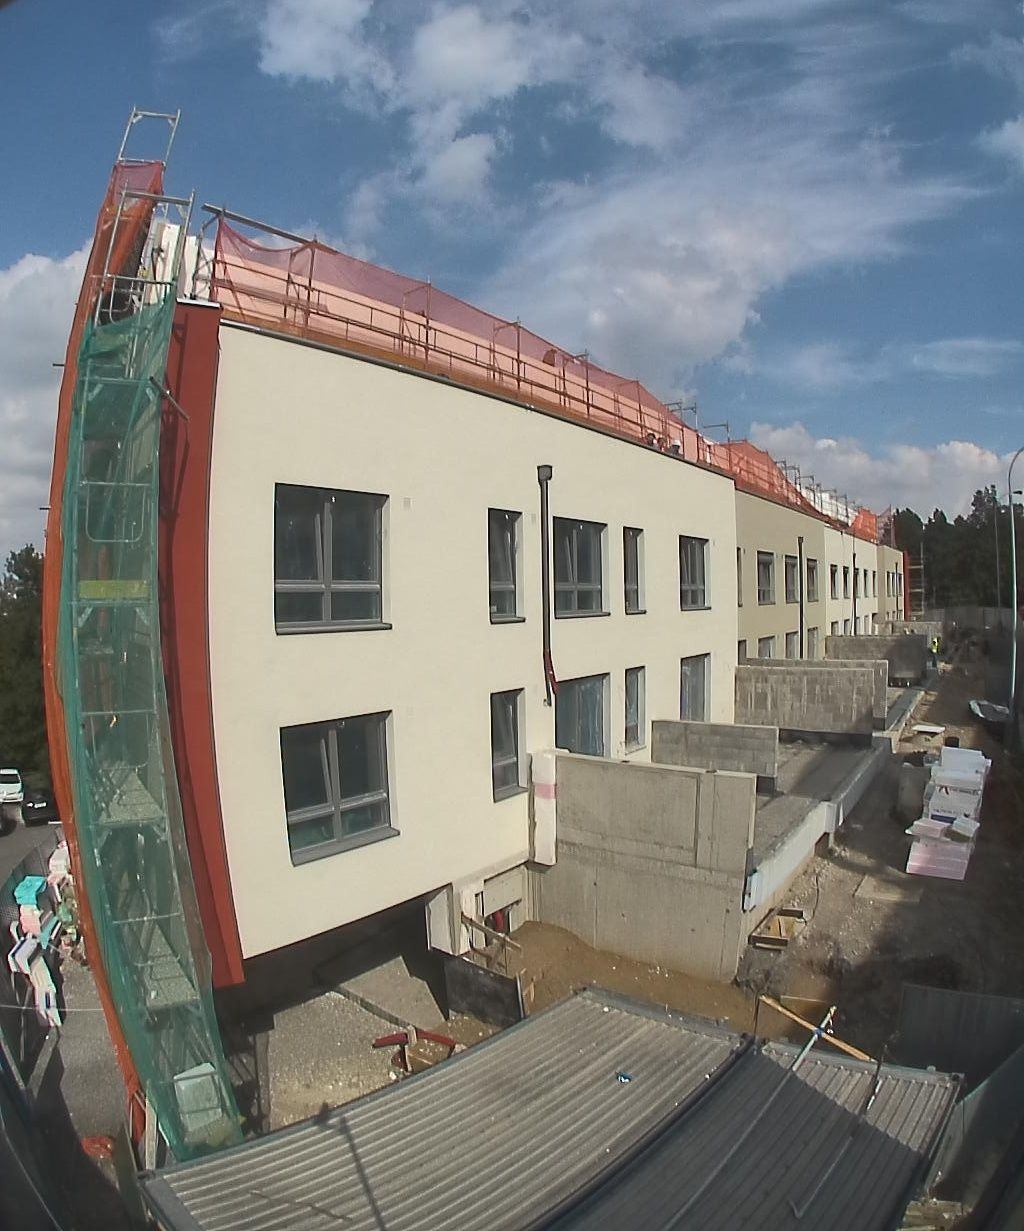 More Apartments Under Construction In Warner Center: The Construction Of The Project Panorama Pražačka In